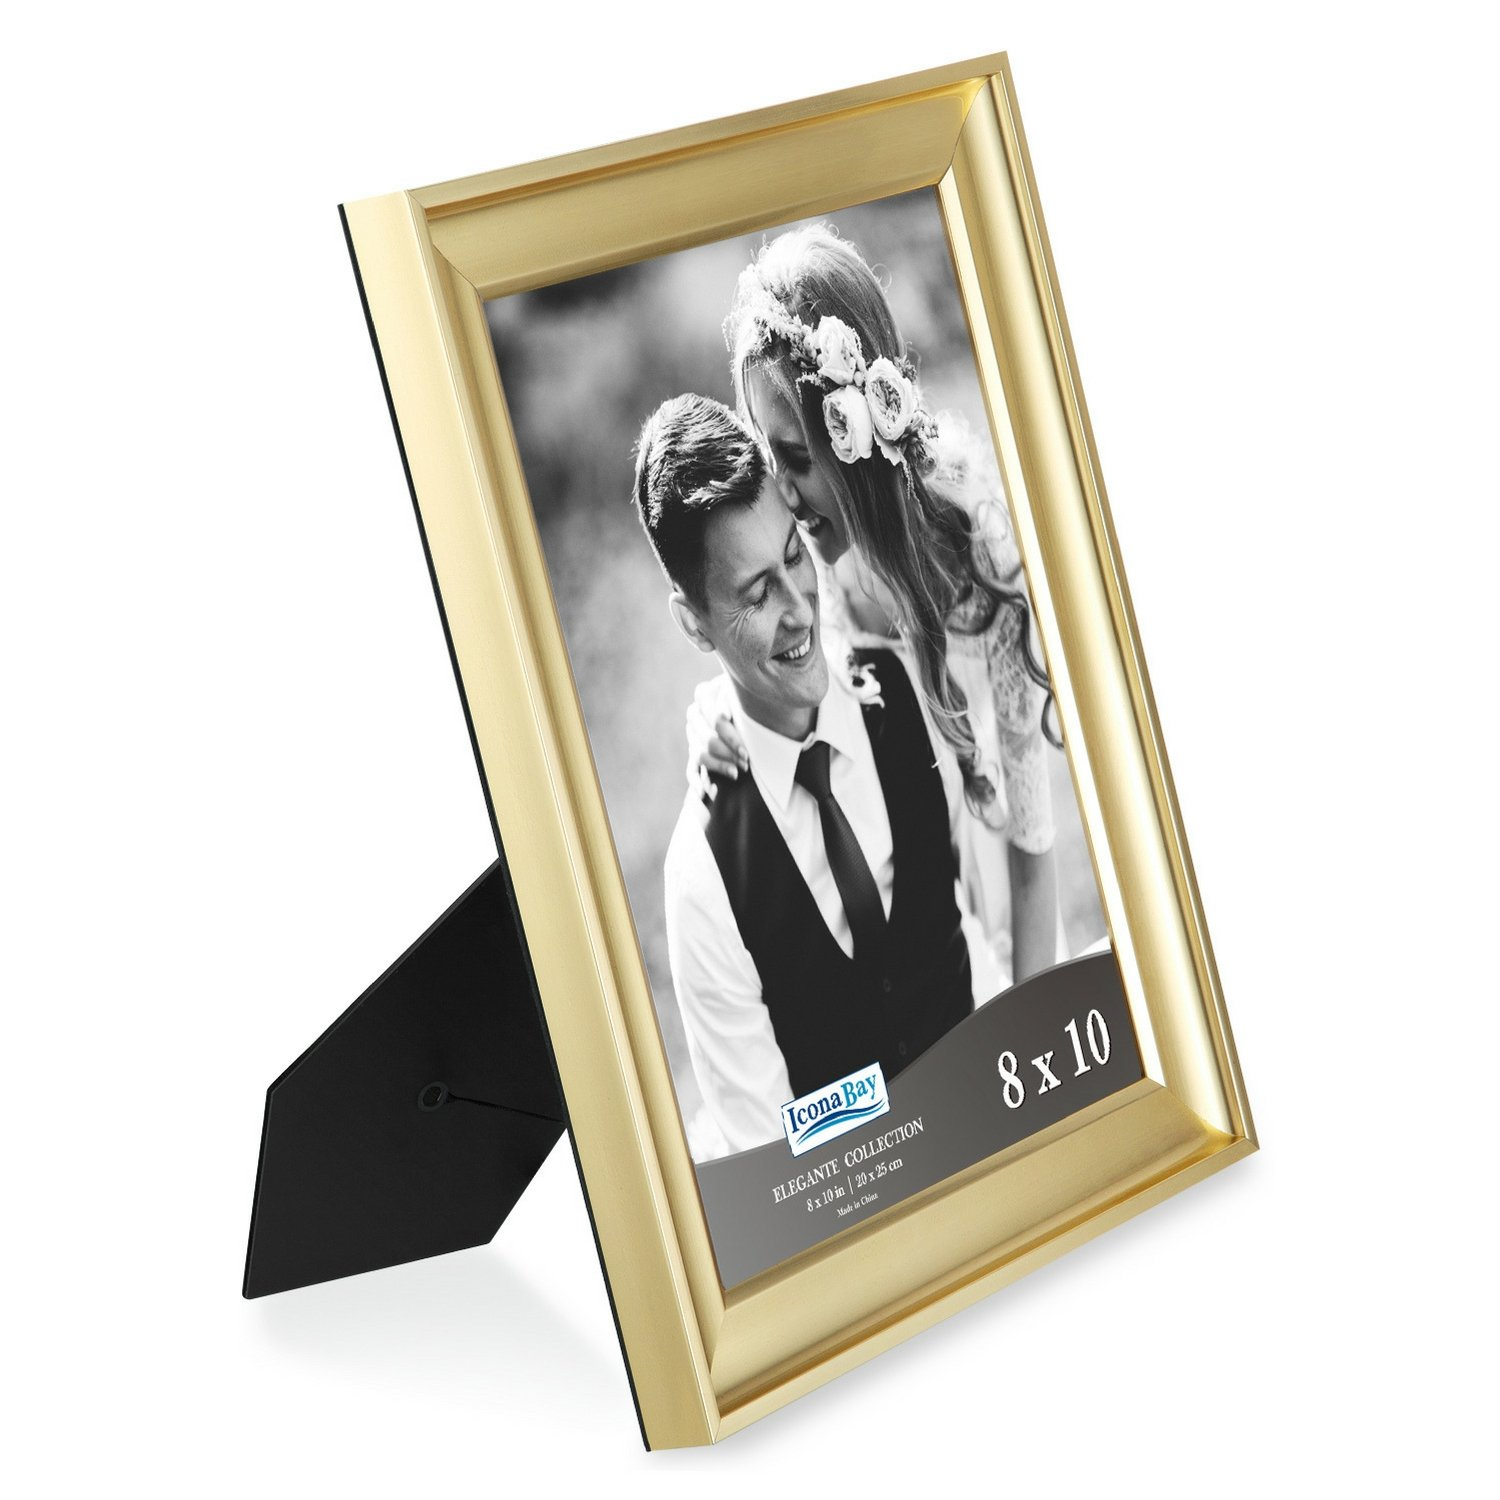 Icona Bay 8x10 Picture Frame (6 Pack, Gold), Gold Photo Frame 8 x 10, Wall Mount or Table Top, Set of 6 Elegante Collection by Icona Bay (Image #3)